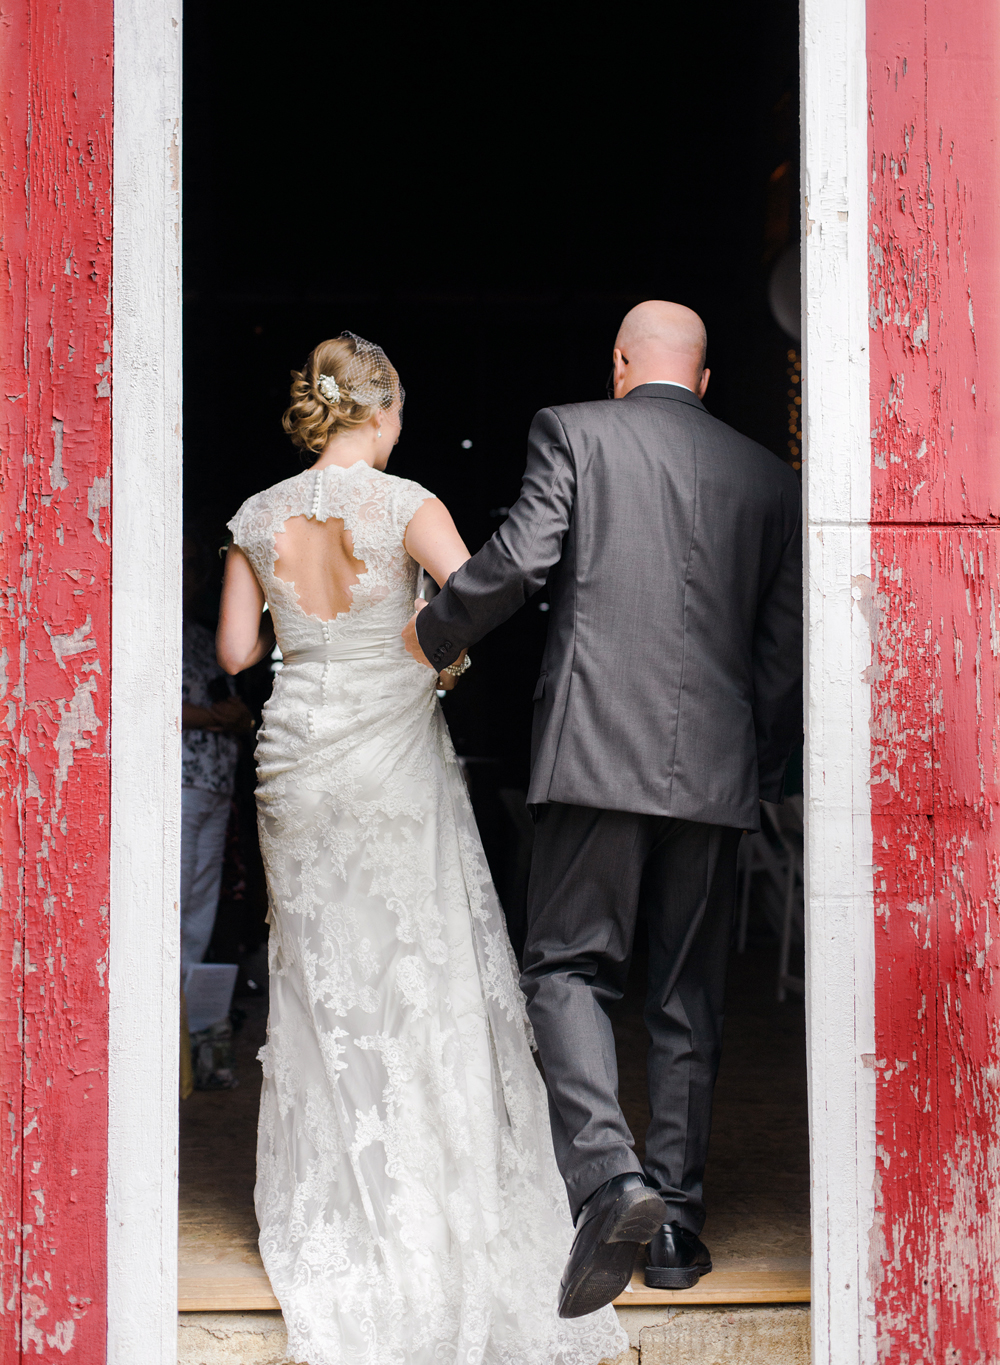 munson-bridge-winery-wedding-026